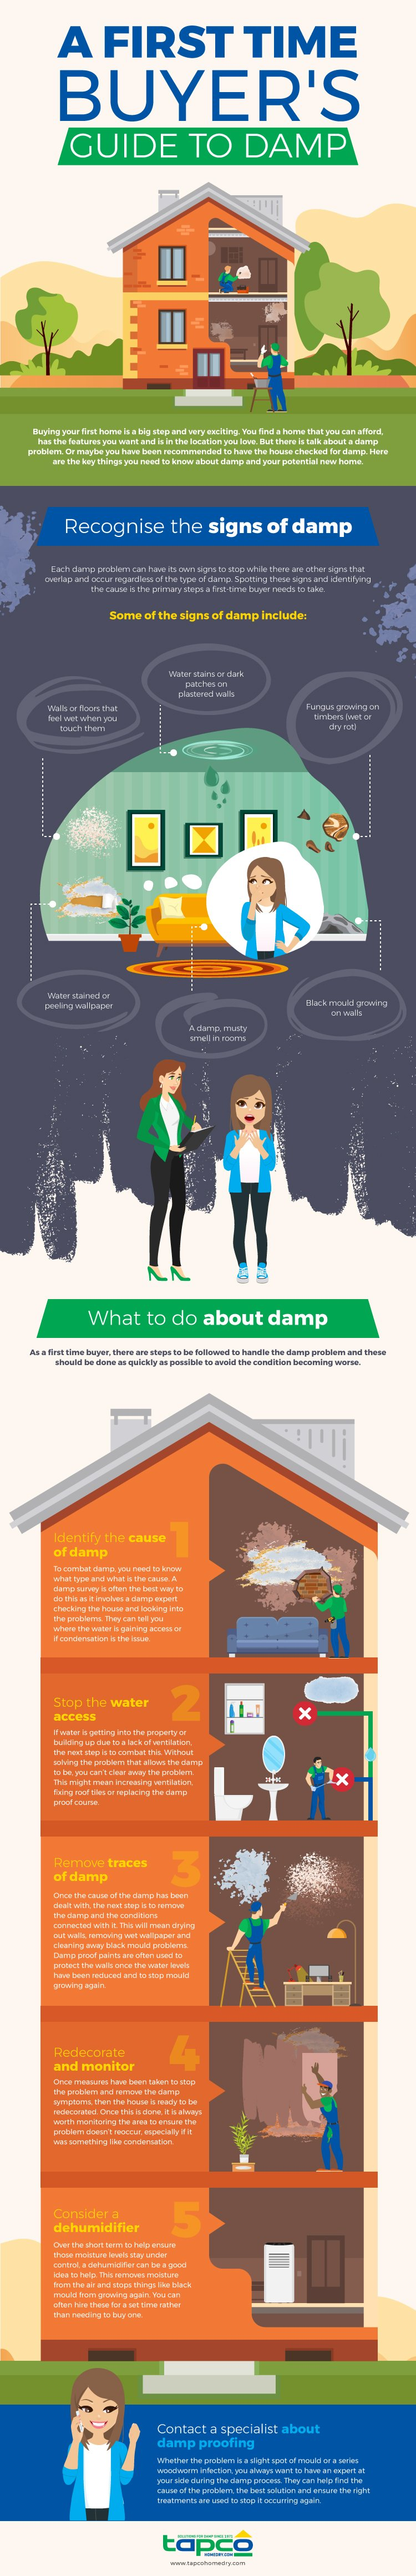 A First Time Buyer's Guide To Damp